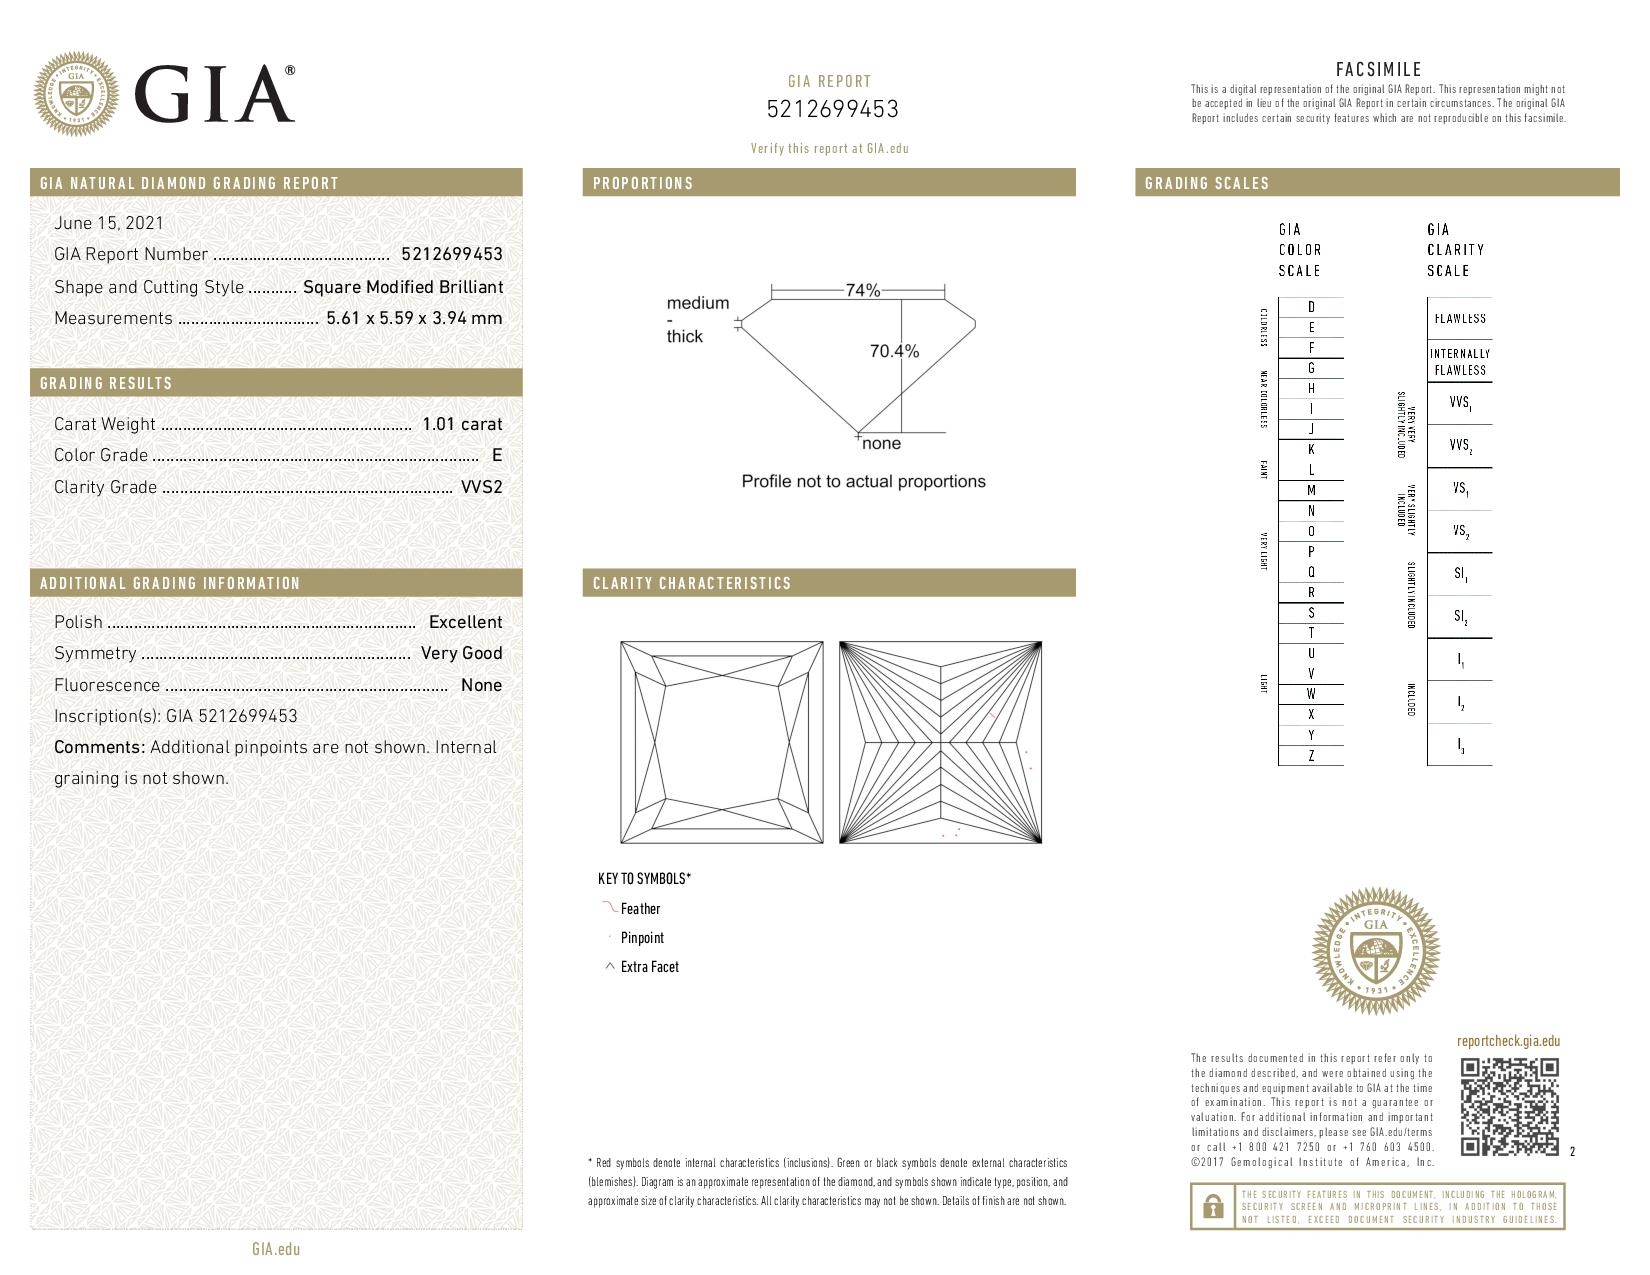 This is a 1.01 carat princess shape, E color, VVS2 clarity natural diamond accompanied by a GIA grading report.